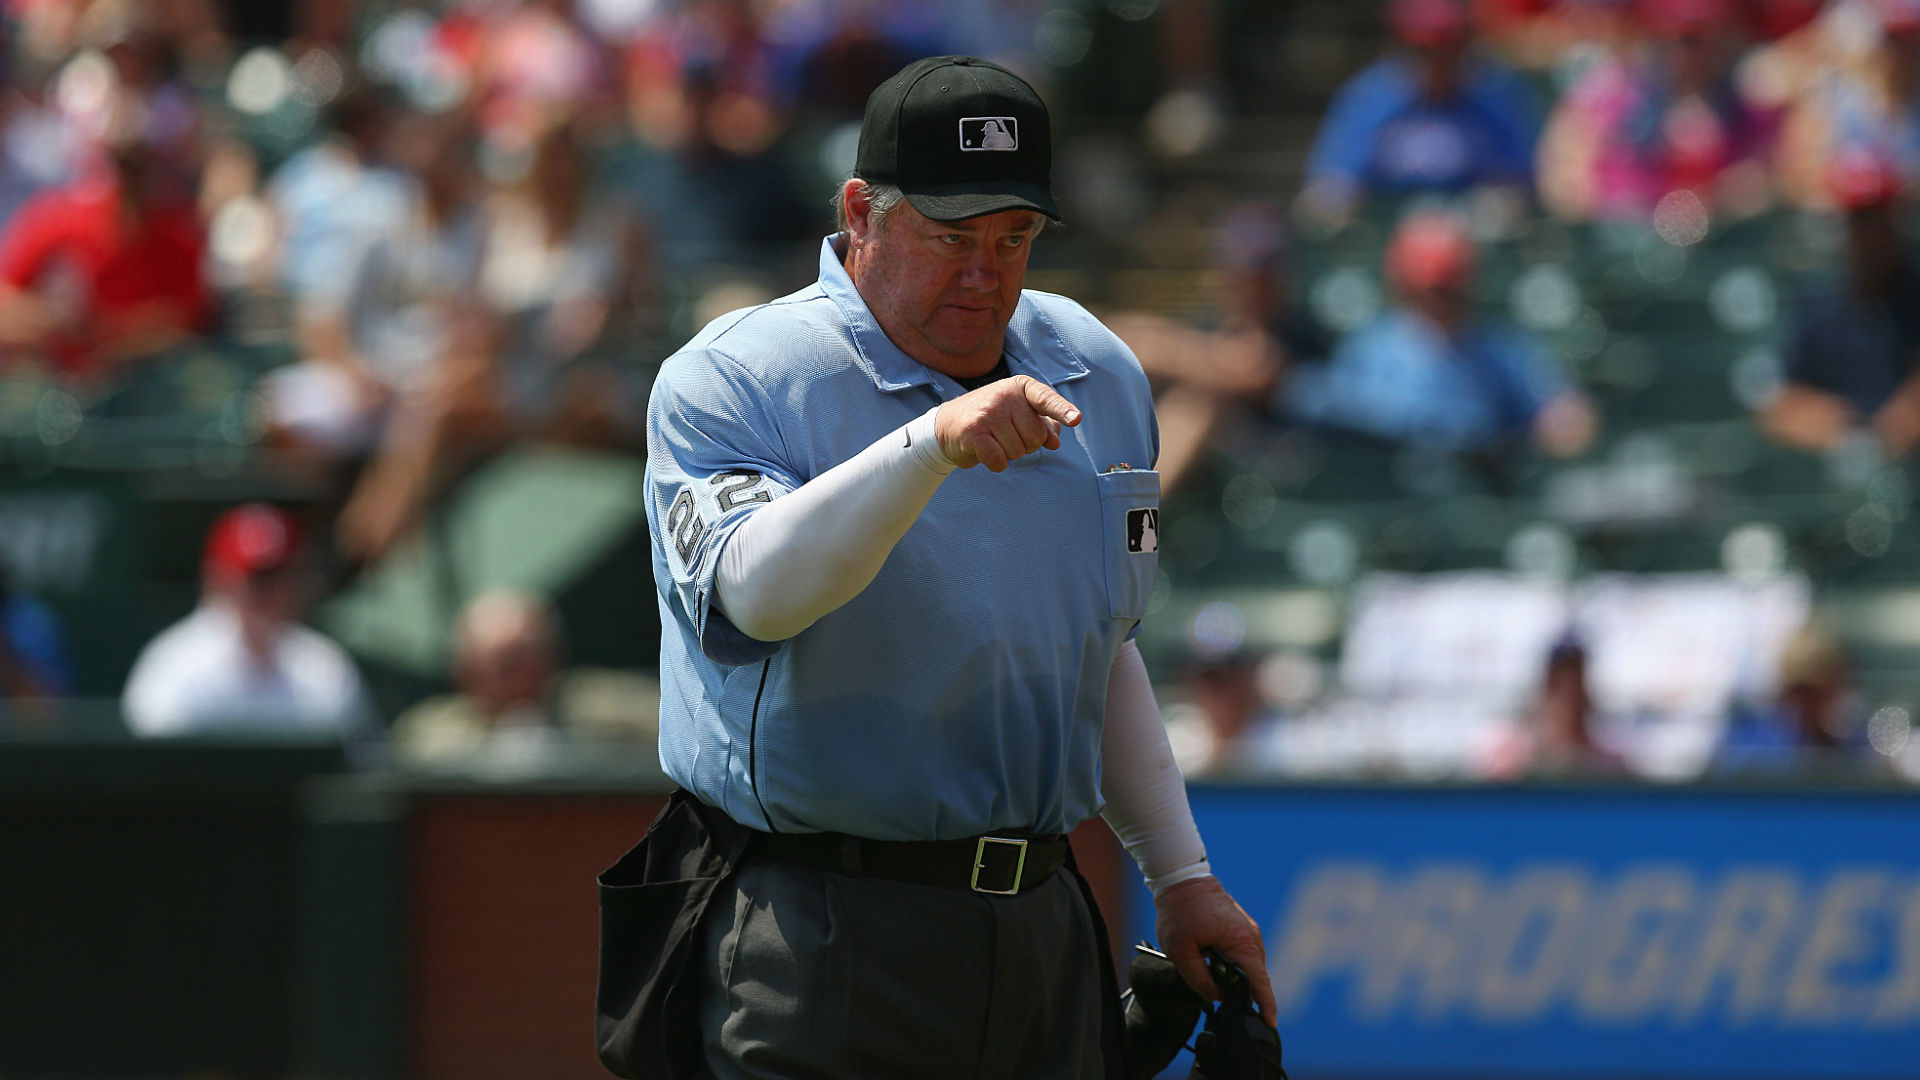 Umpire suspended for calling Beltre 'biggest complainer'